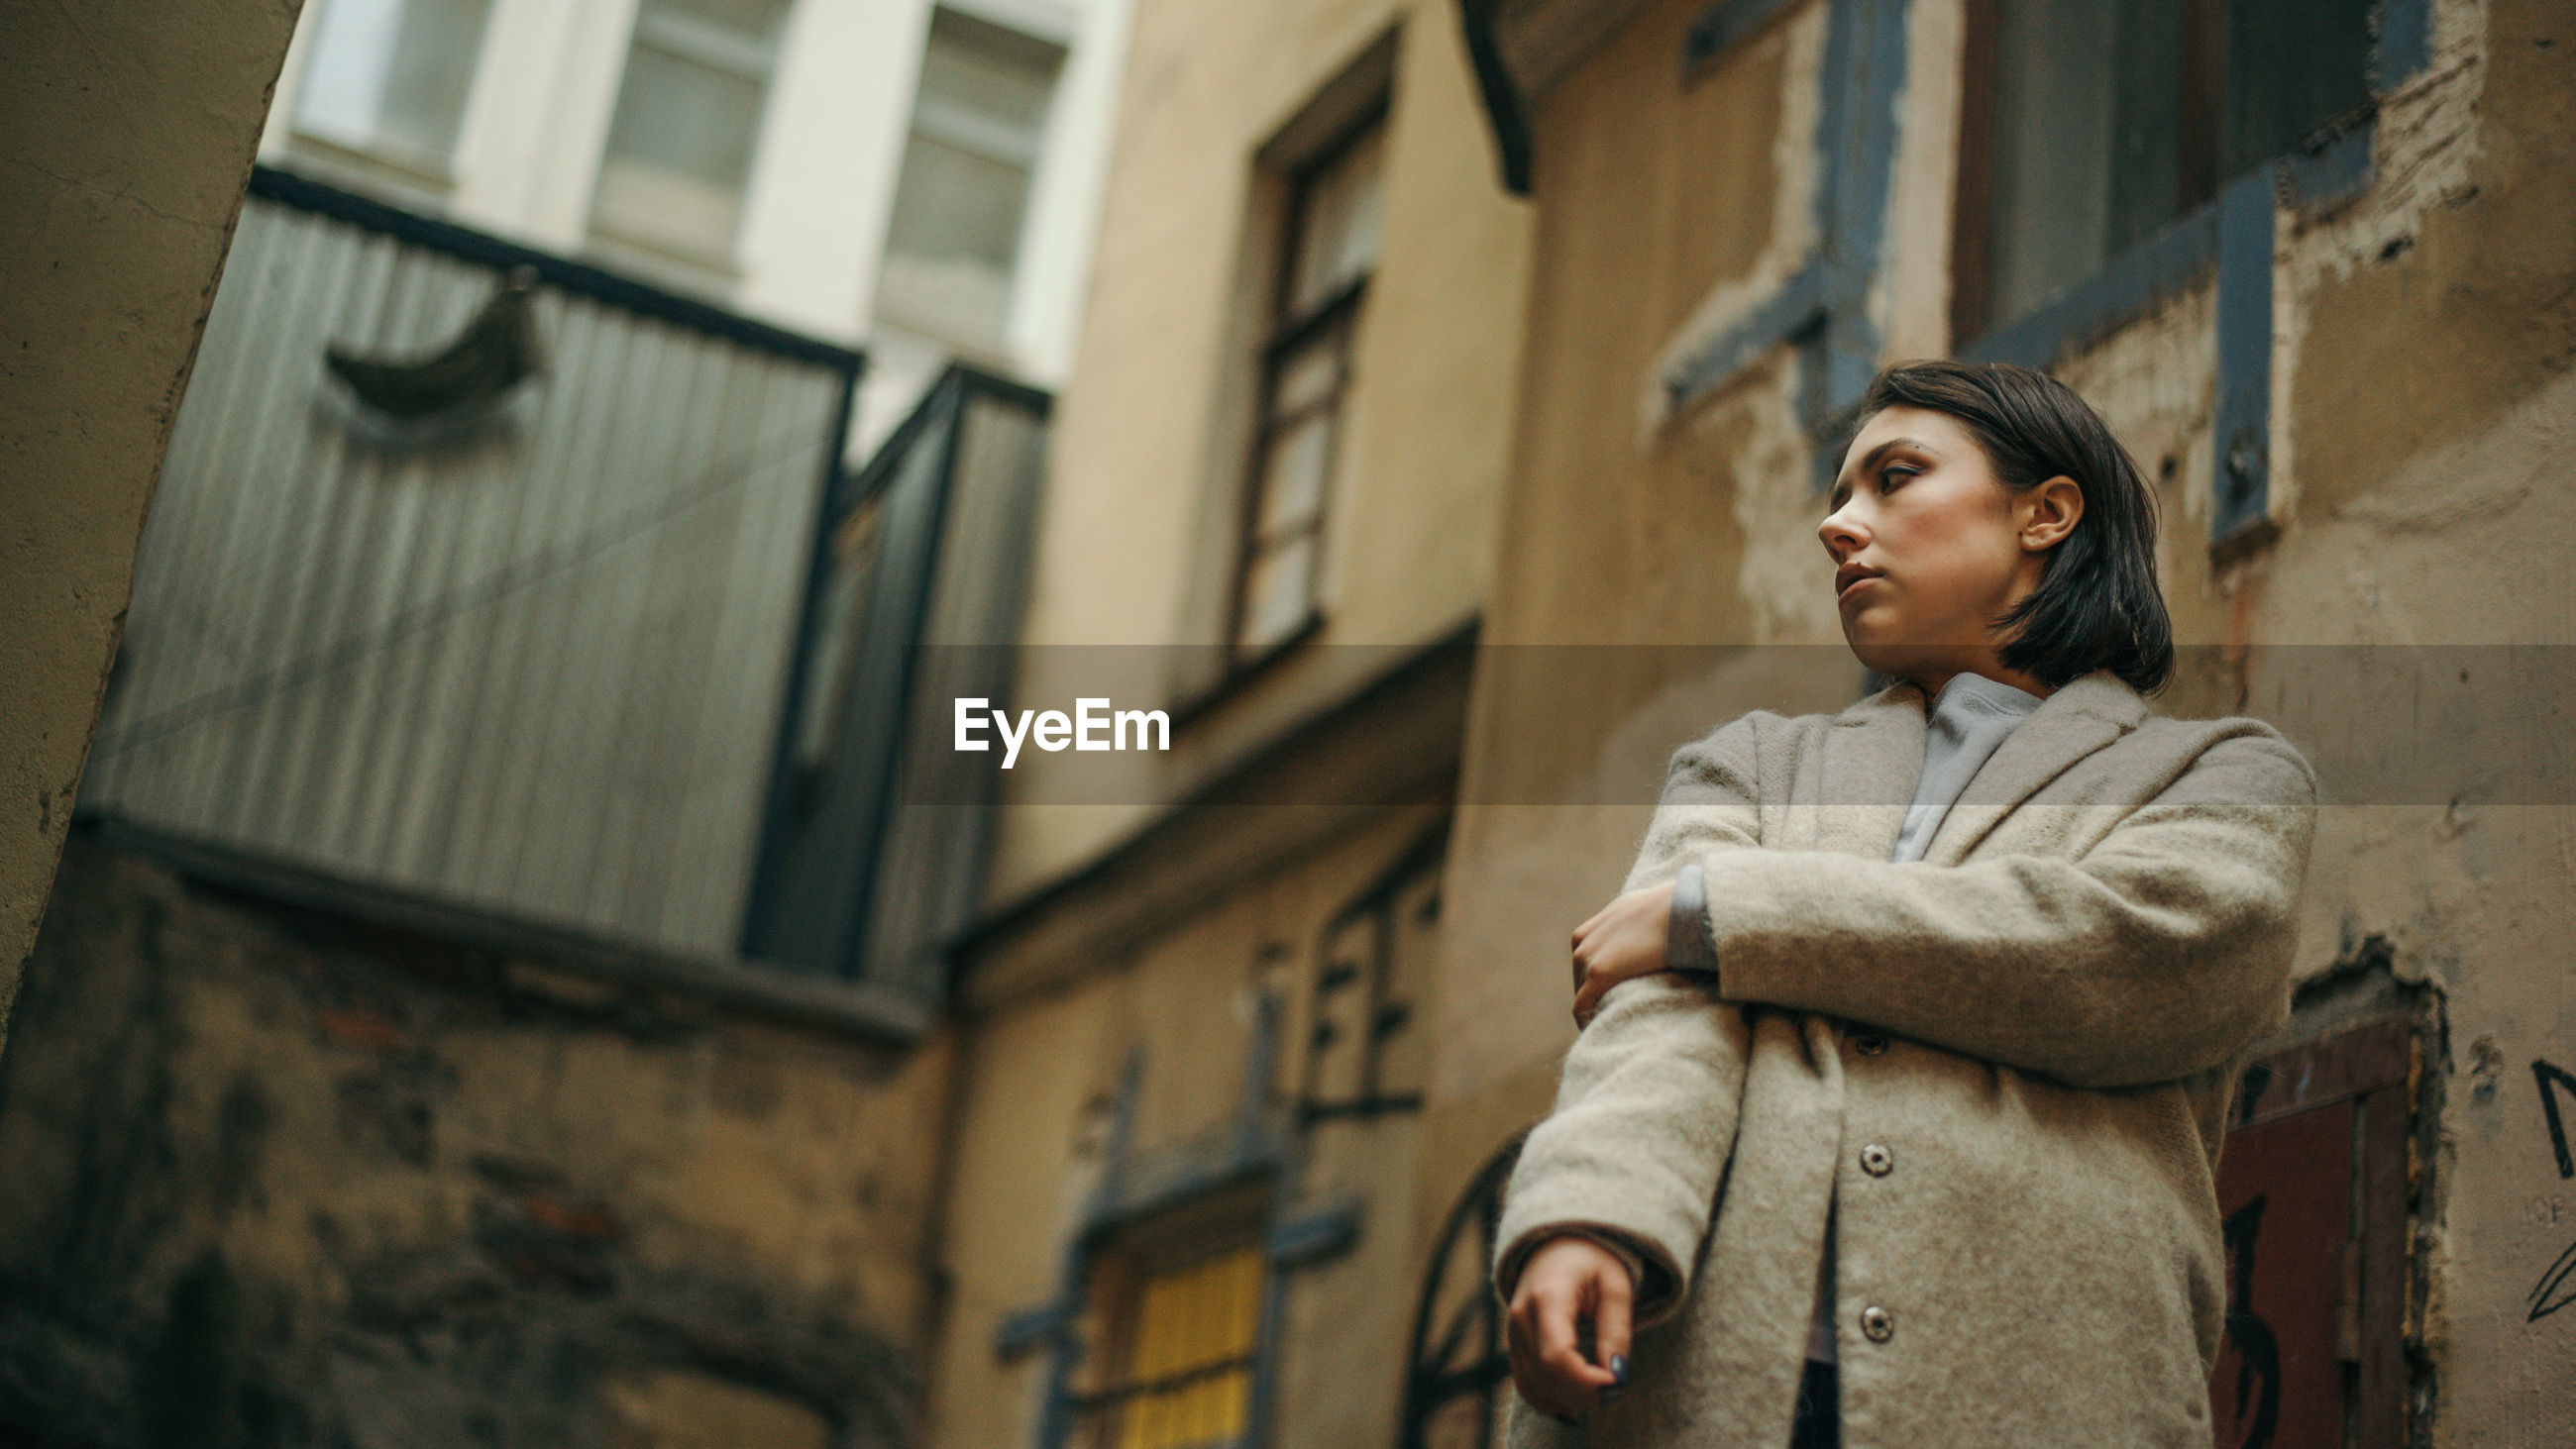 Portrait of young woman in city